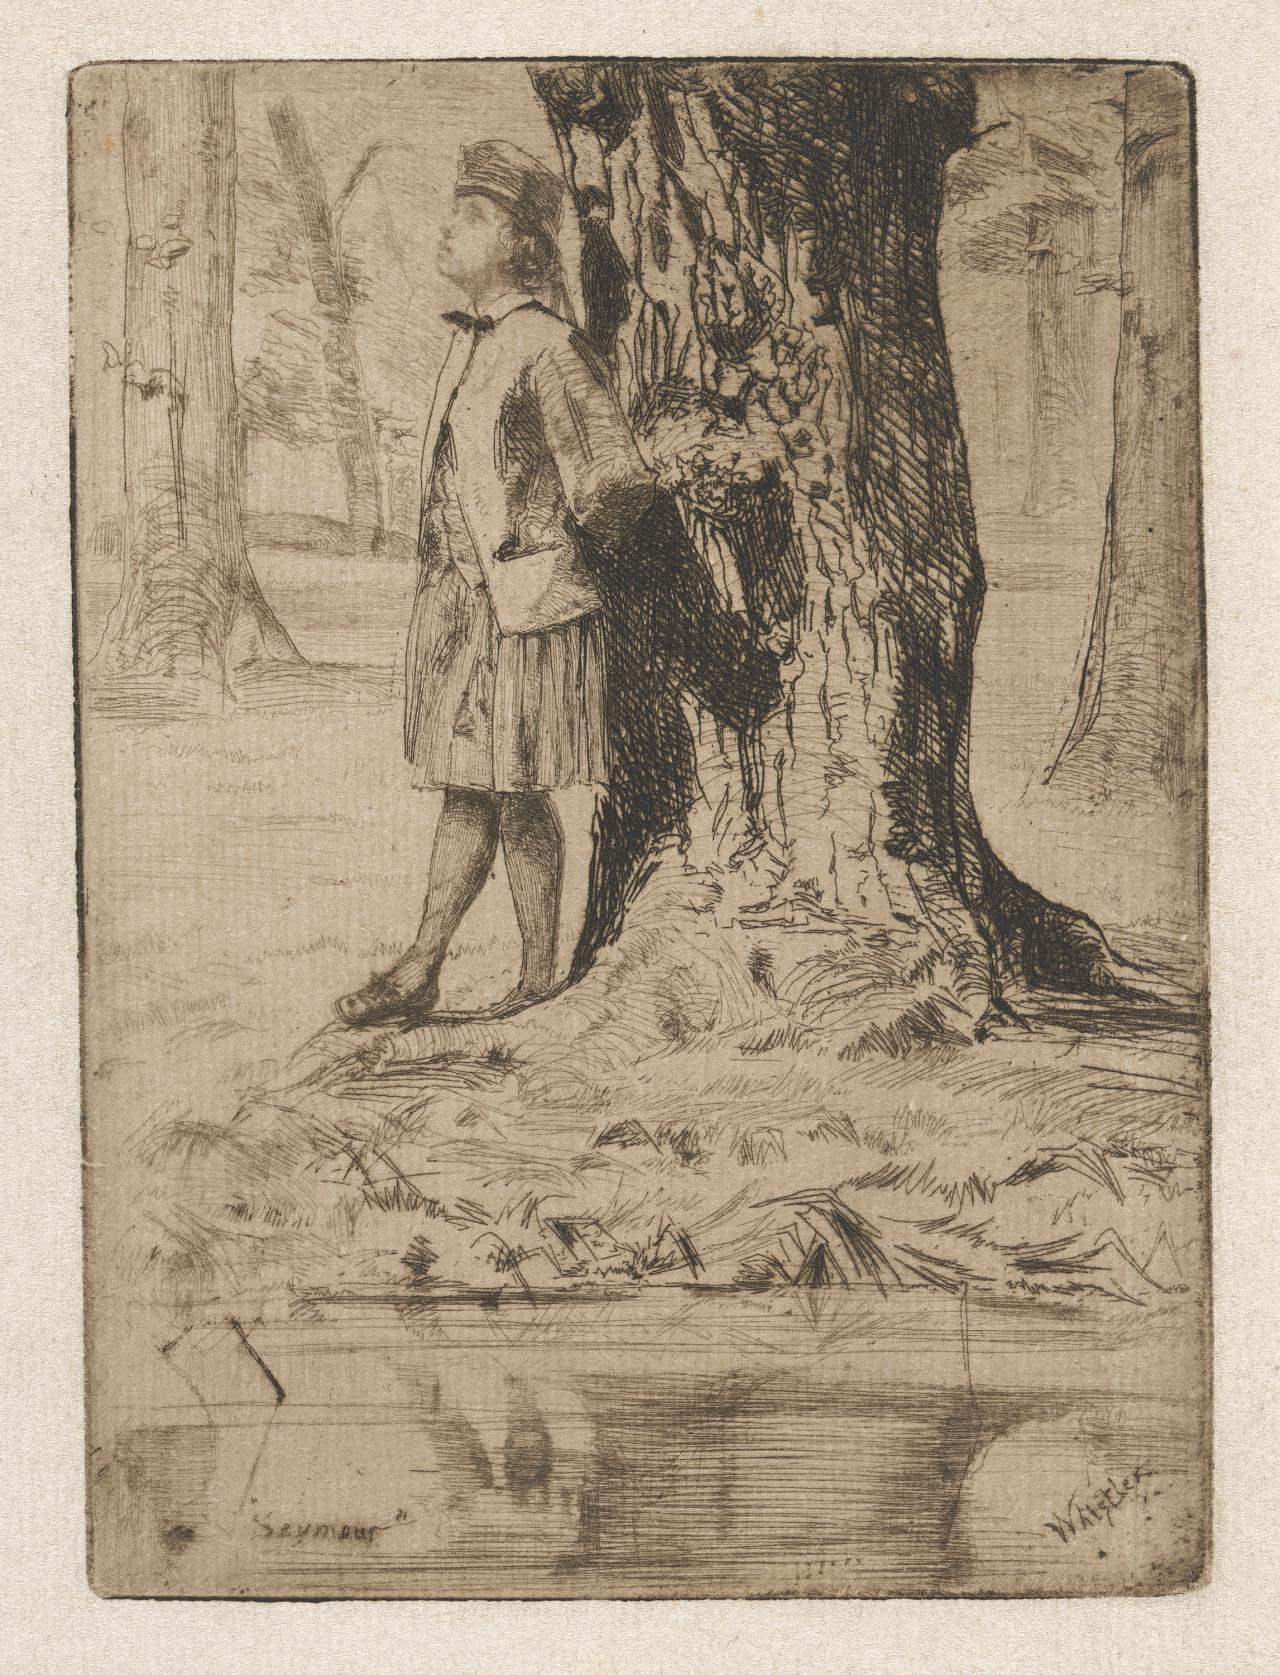 Seymour, standing under a tree